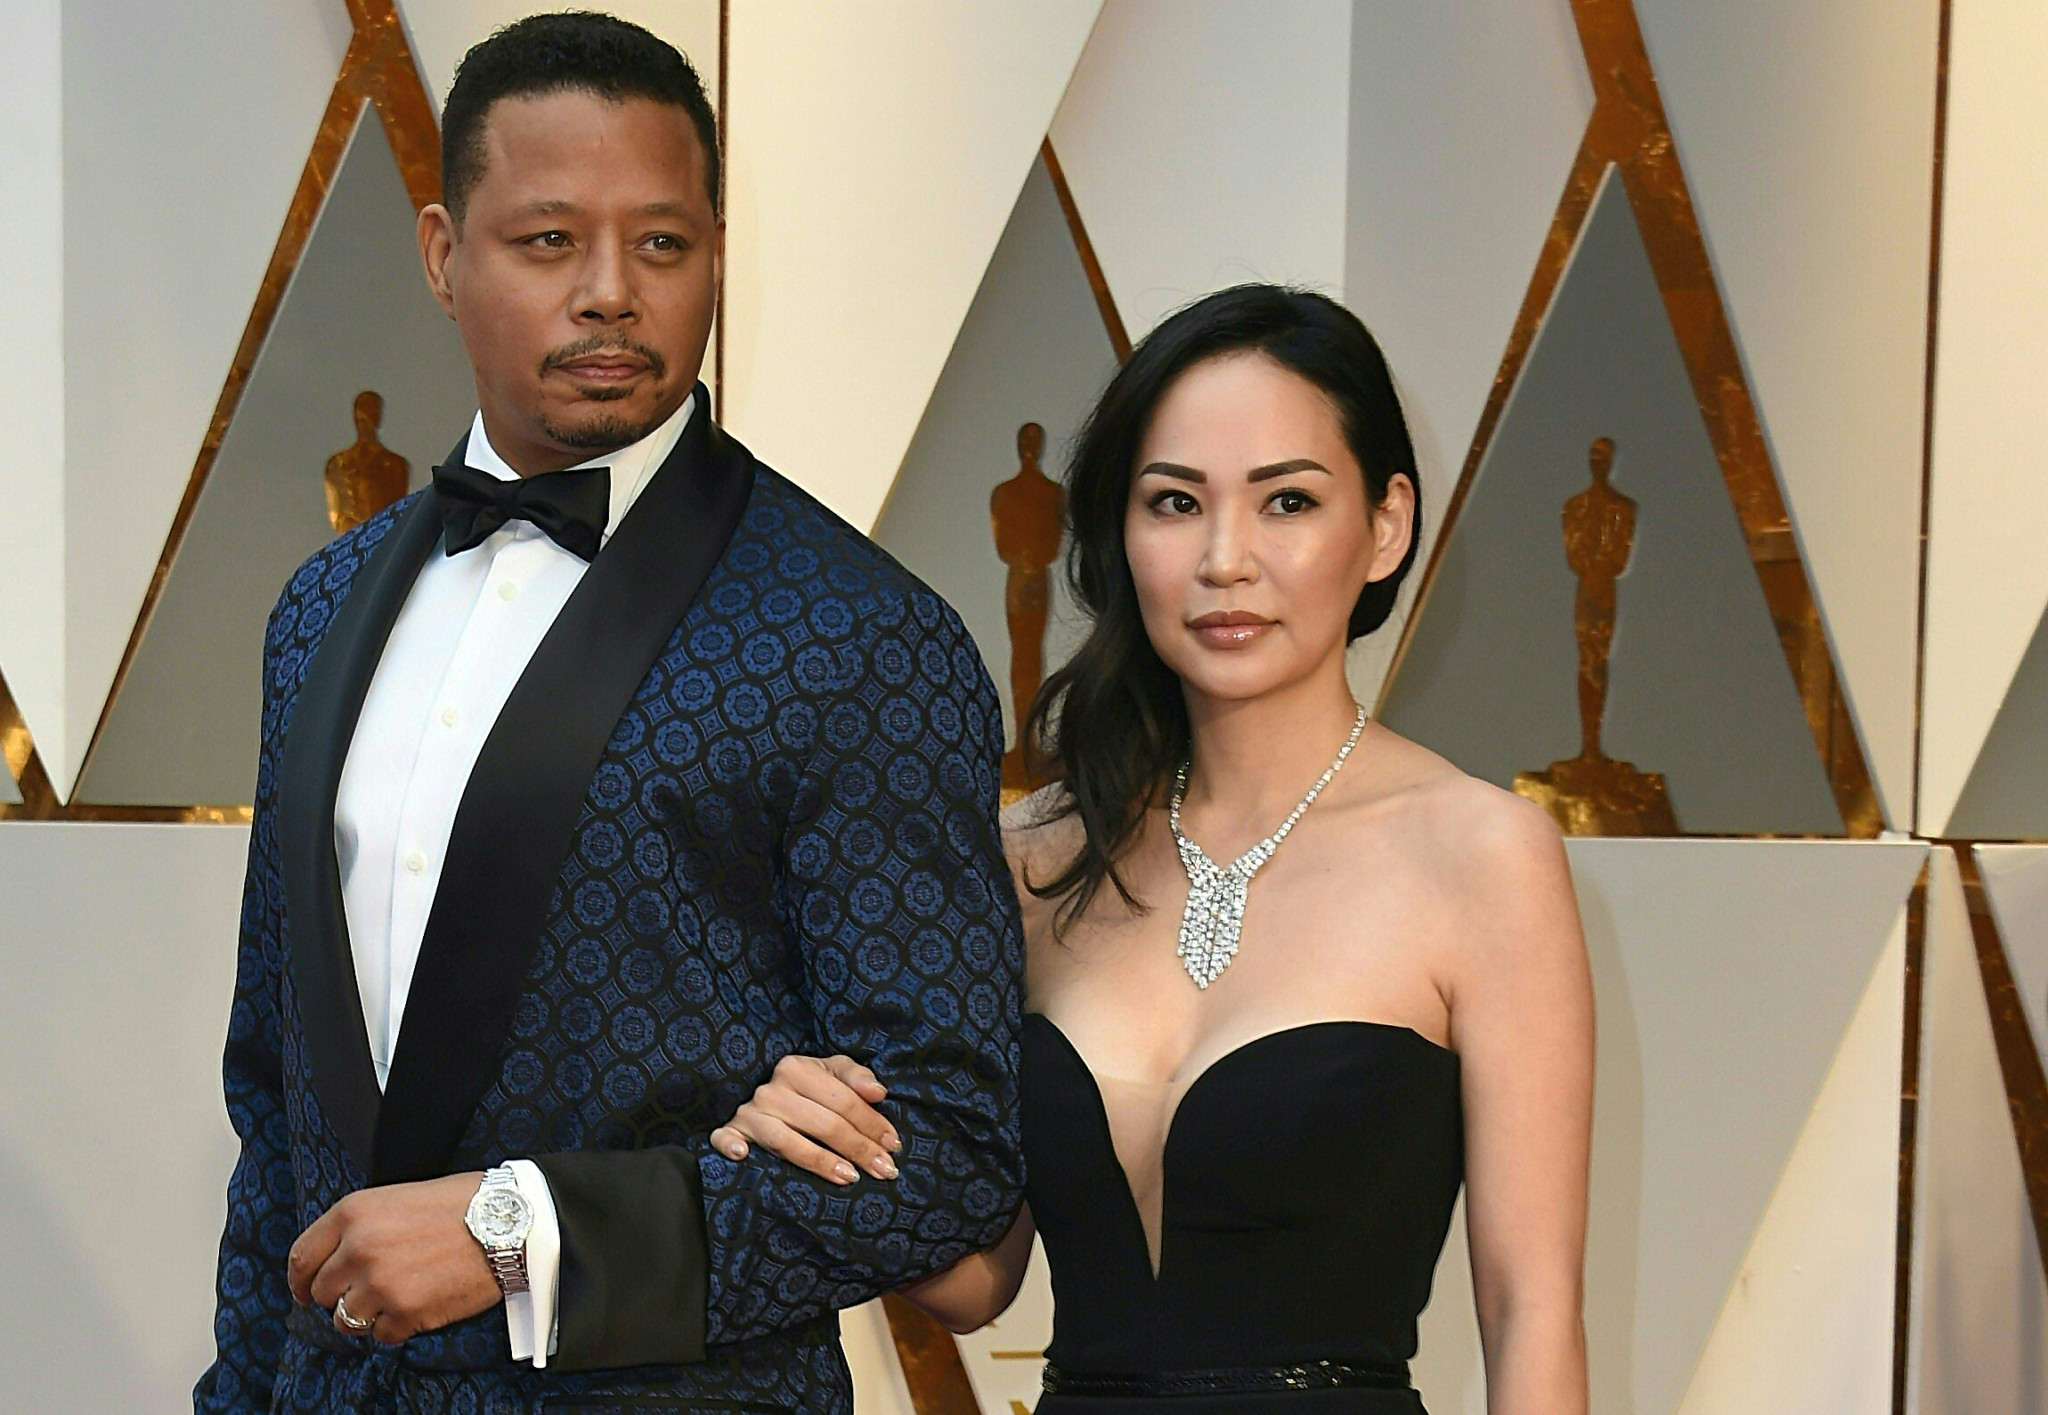 Actor Terrence Howard arrives on the red carpet for the 89th Oscars on February 26, 2017 in Hollywood, California.  / AFP / VALERIE MACON        (Photo credit should read VALERIE MACON/AFP/Getty Images)